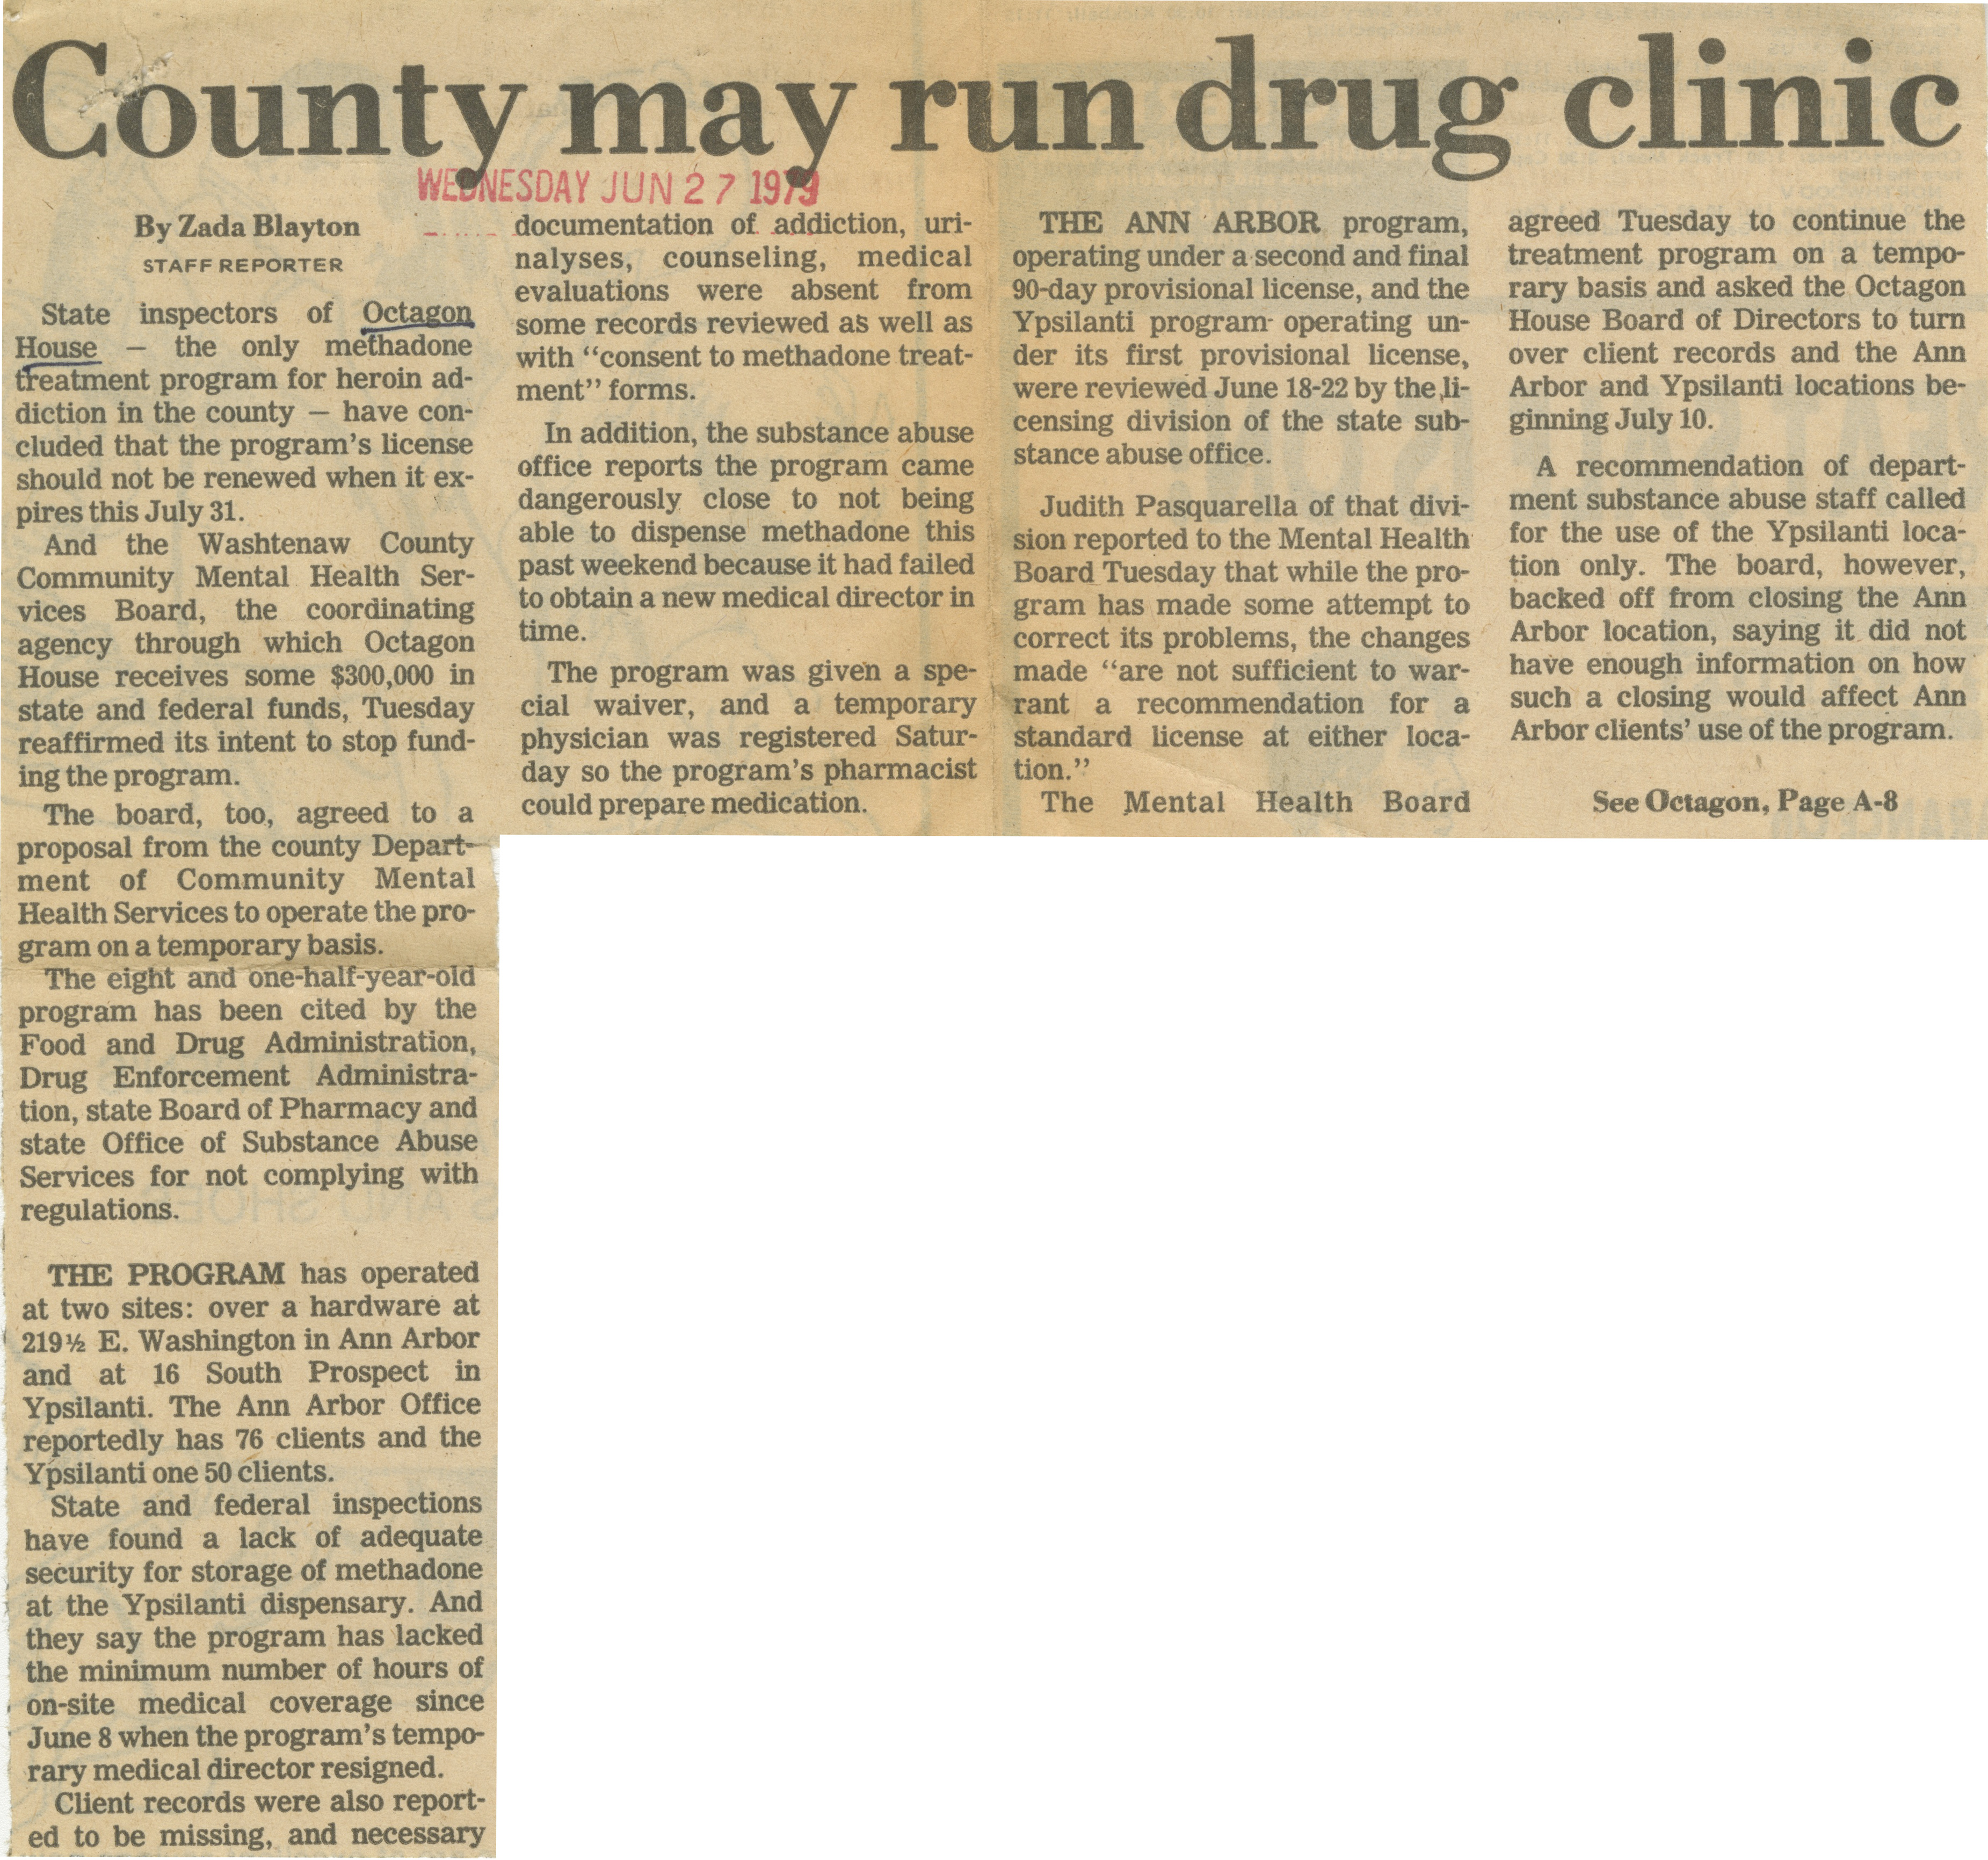 County may run drug clinic image